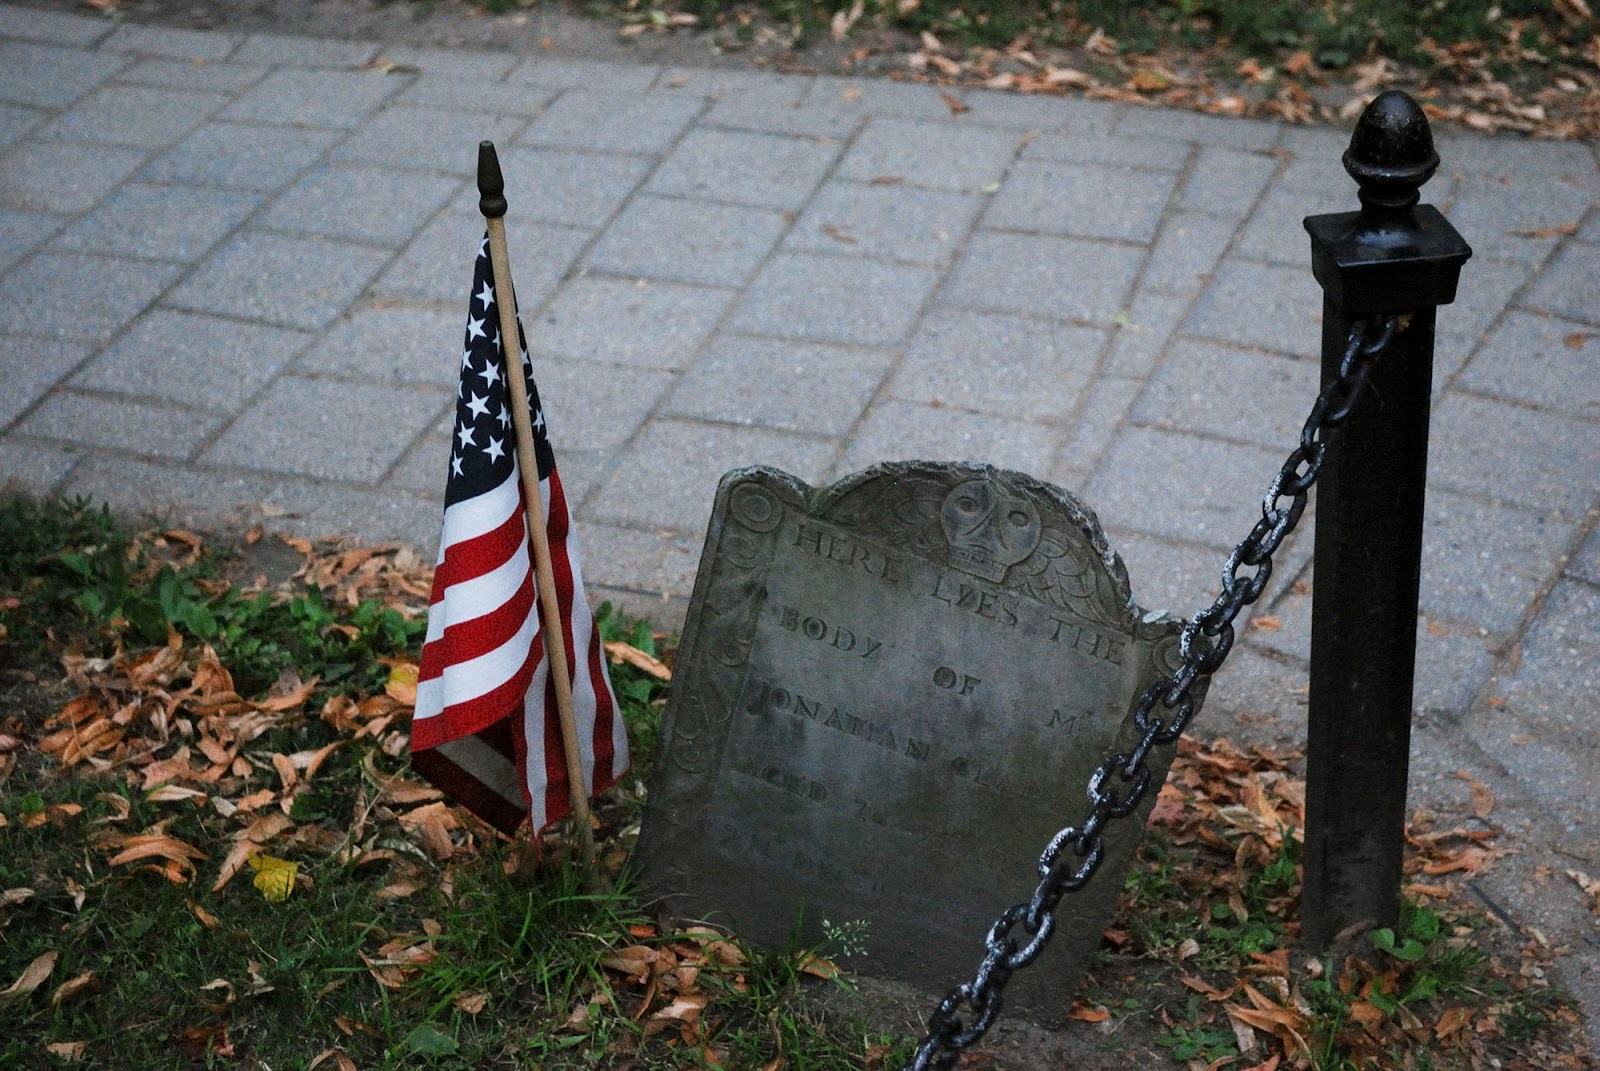 granary burying ground freedom trail map boston itinerary plan guide tourism usa america park east coast